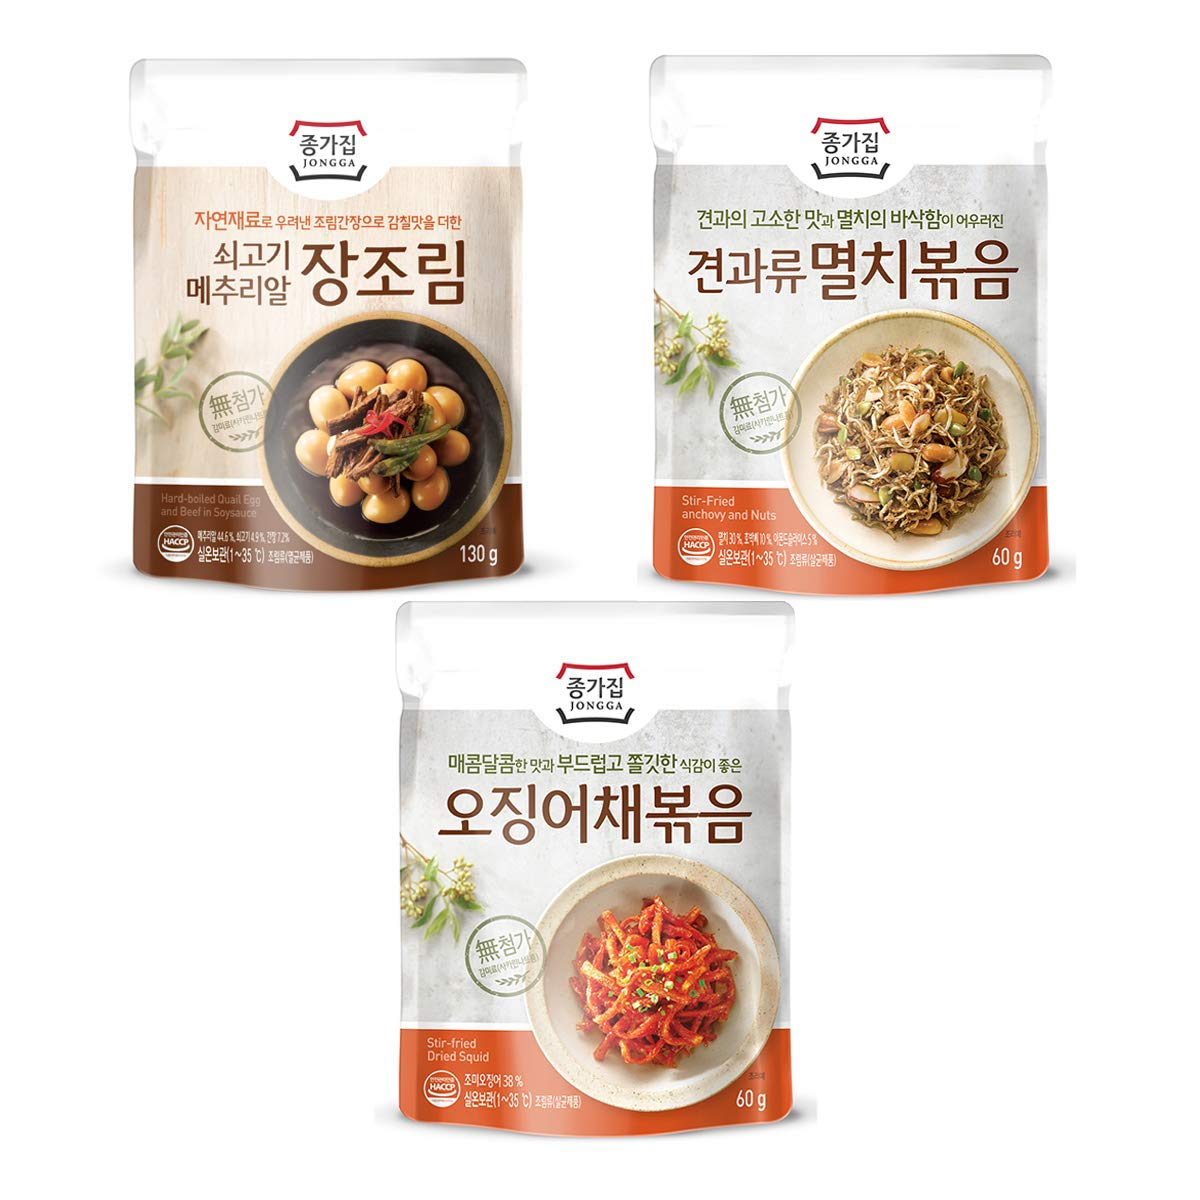 [Jongga] Korean side dish 3 set / Spicy Stir-fried Dried Squid 60g + Stir-fried Anchovies 60g + Beef Quail Egg Glazed Dishes 130g / Korean food (overseas direct shipment)